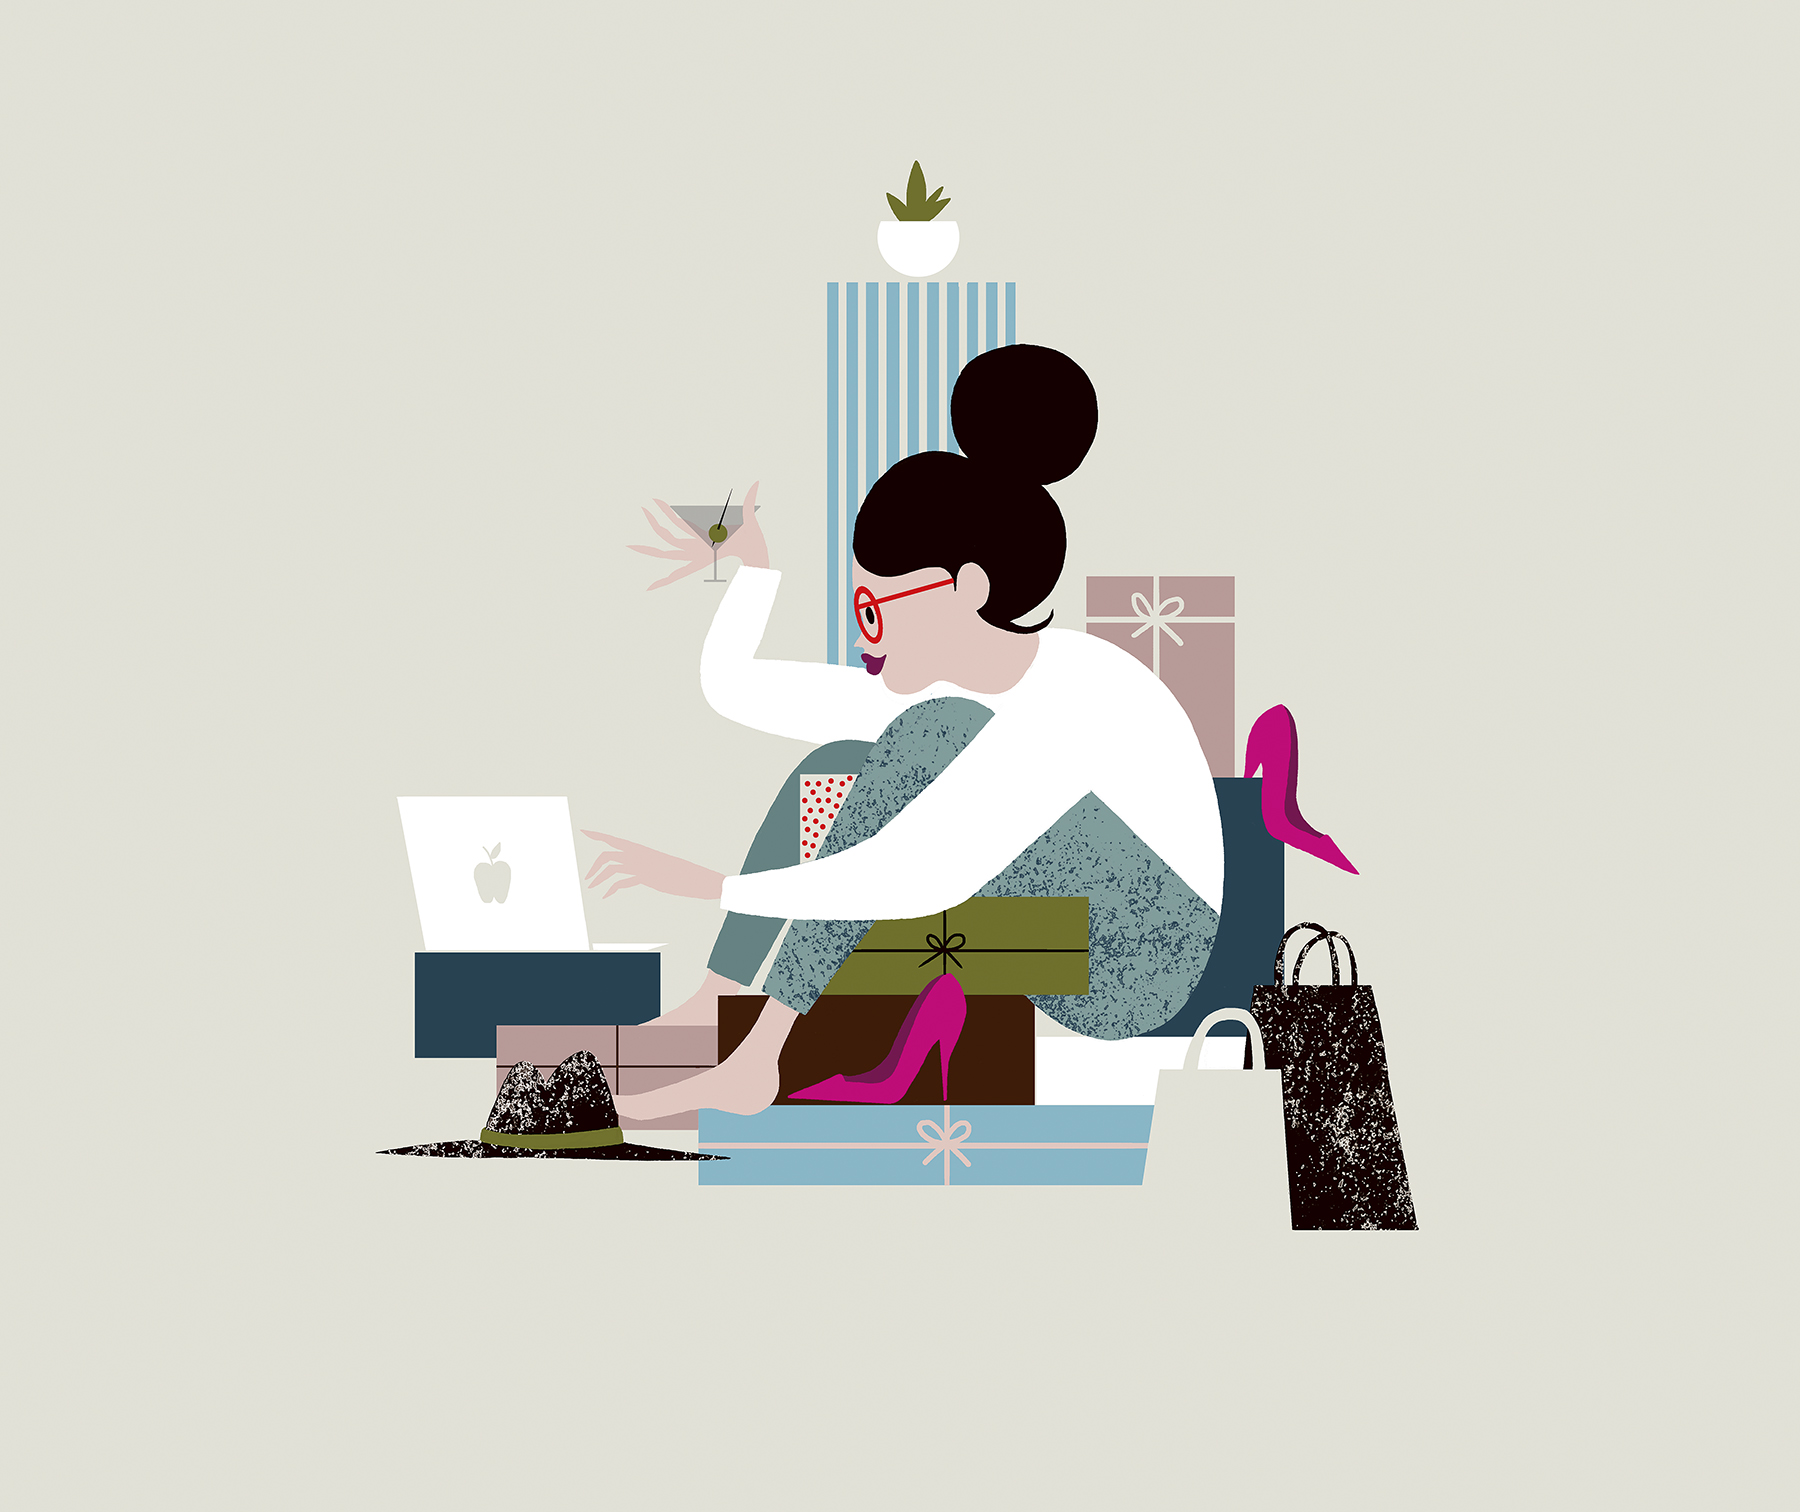 Illustration: woman multitasking while internet shopping